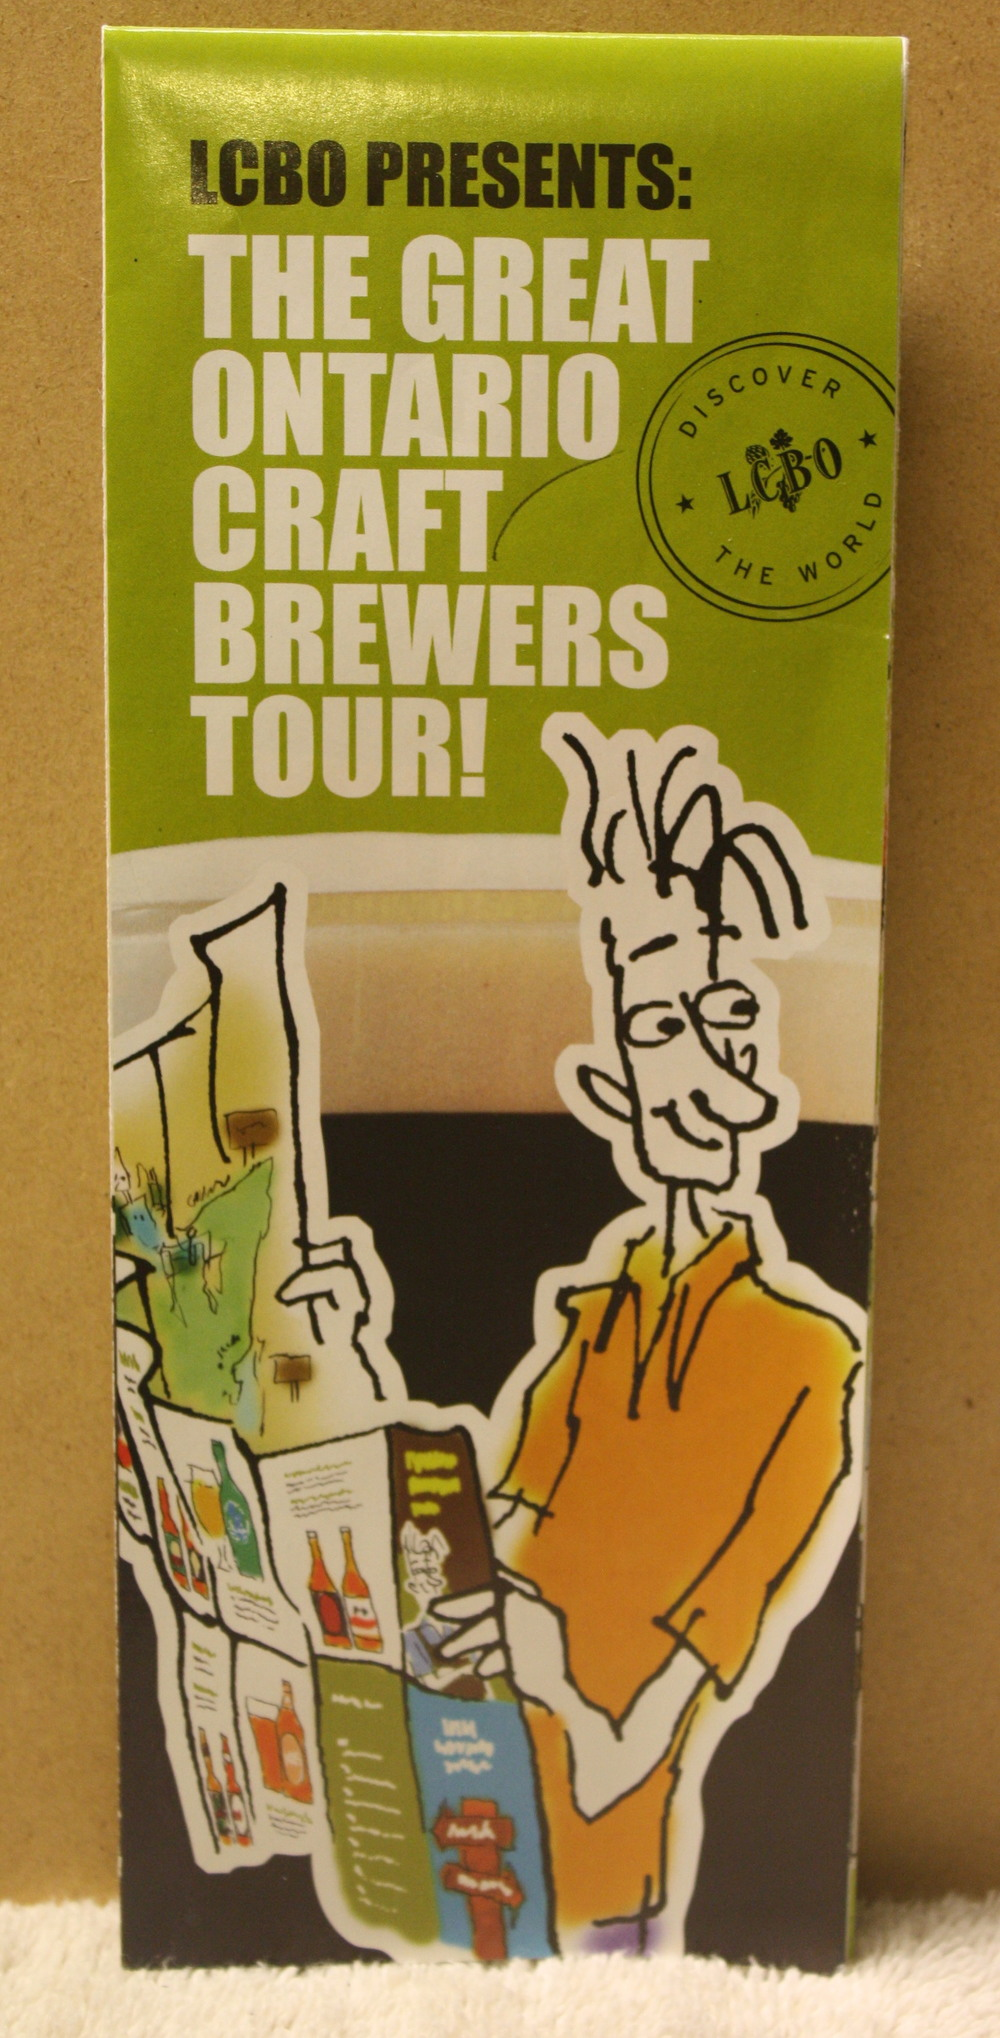 OCB_LCBO Presents The Great Ontario Craft Brewers Tour_2007